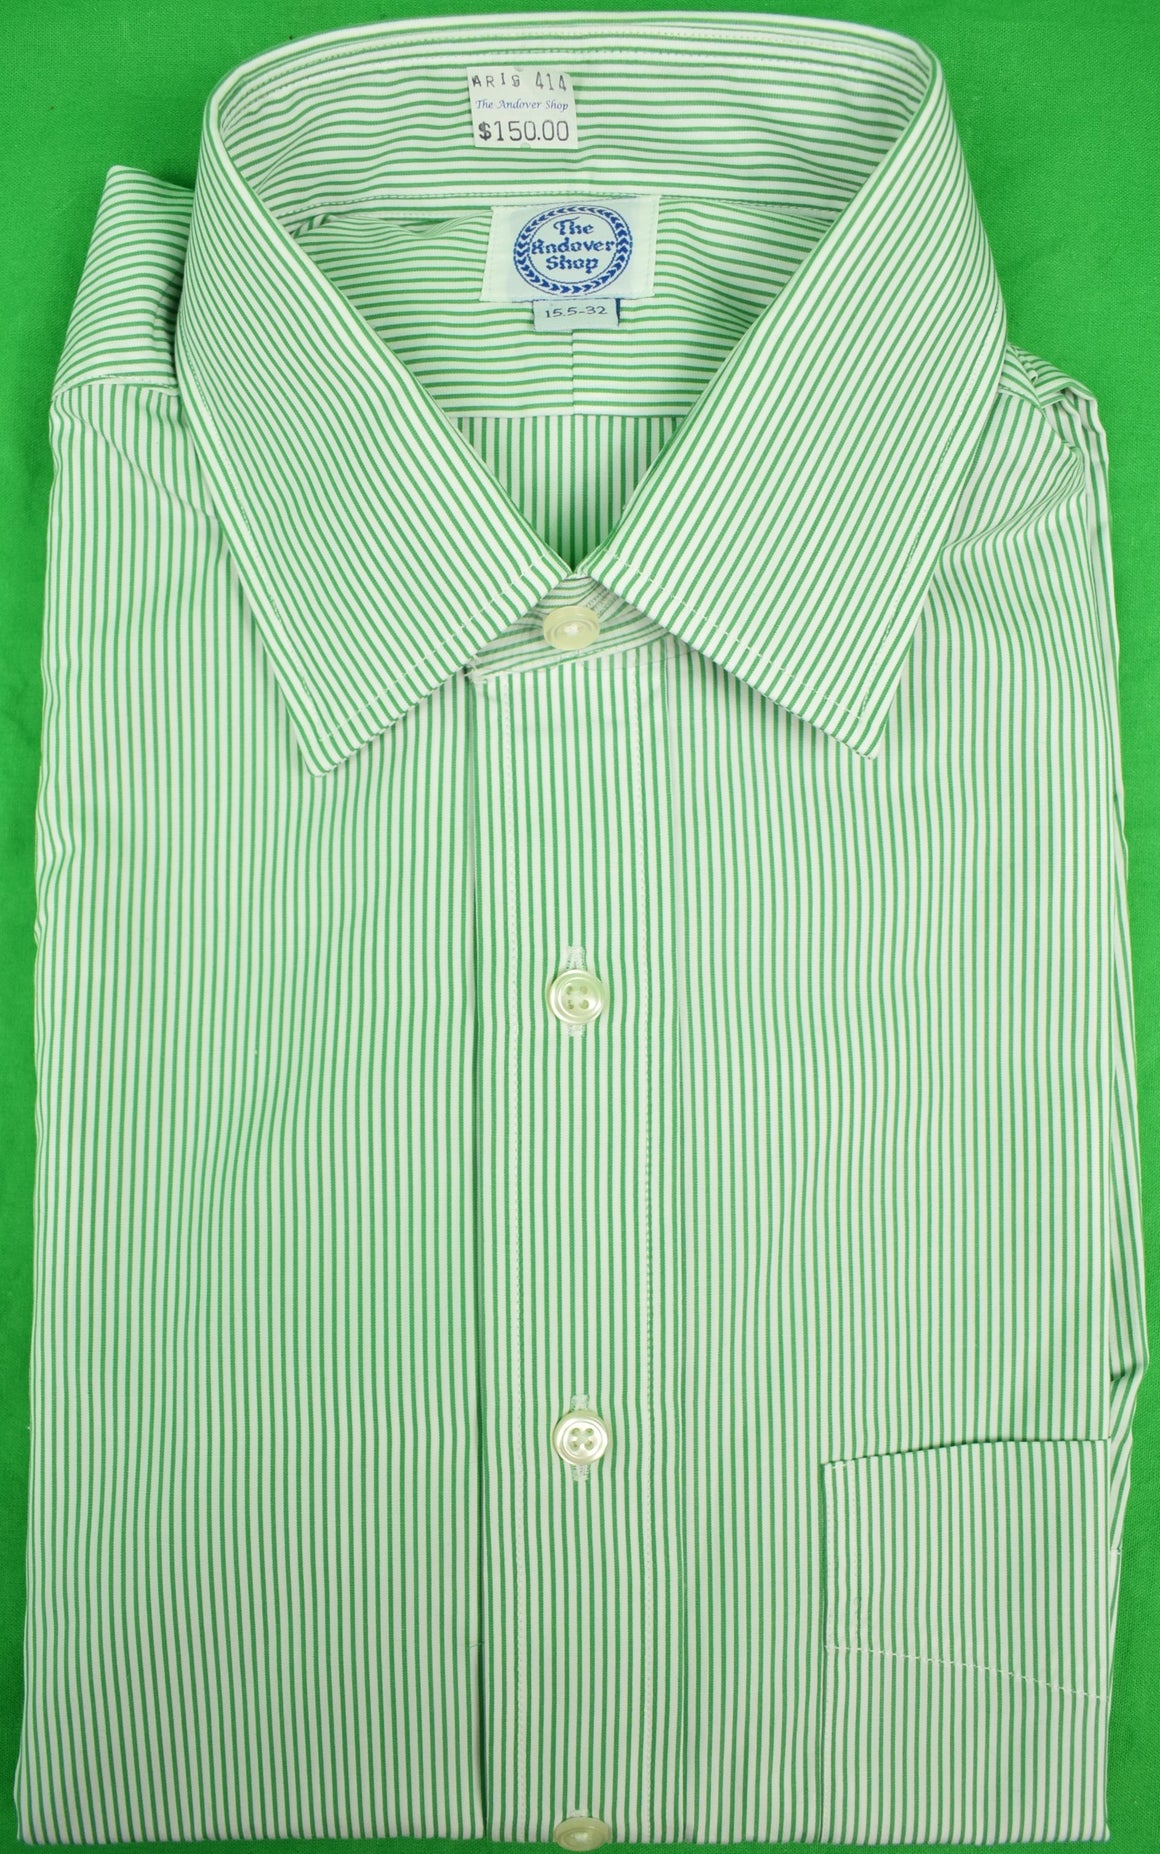 The Andover Shop Green/ White Pinstripe Dress Shirt Sz: 15.5-32 (New w/ Tag!)